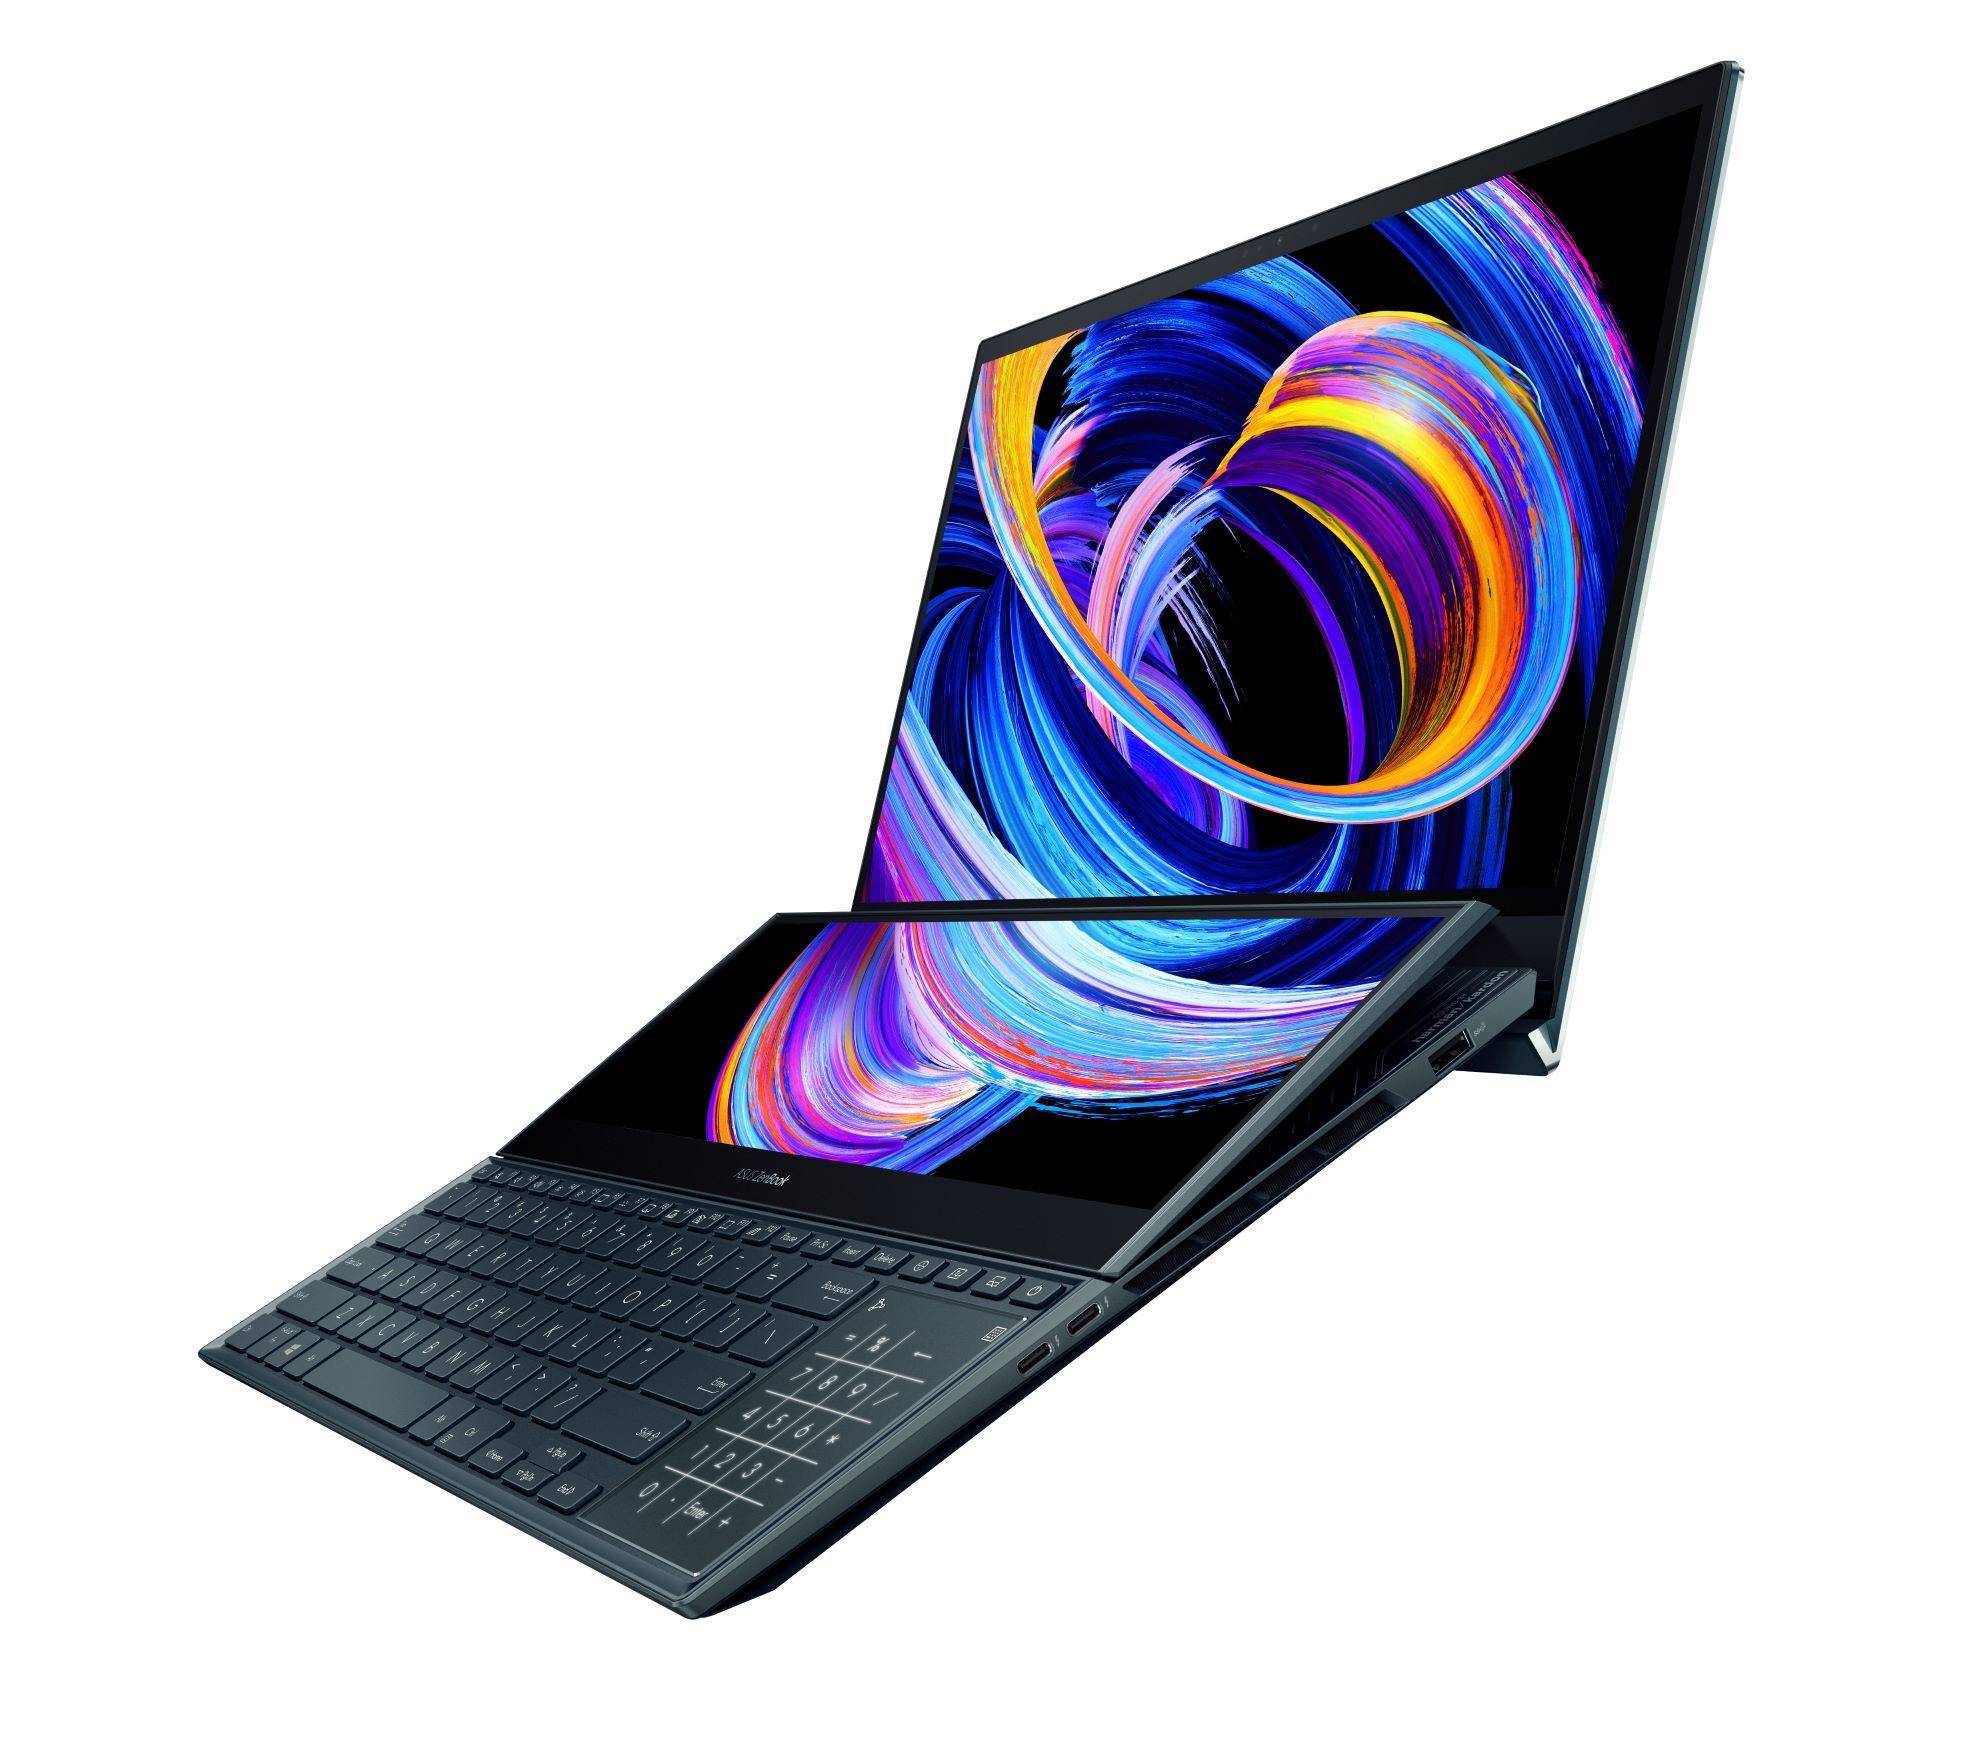 CES 2021: ASUS ROG Flow X13 and ZenBook Pro Duo with ScreenPad Plus ZenBook-Pro-Duo_UX582_Product-photo_1A_Celestial-Blue_15_resized-1.jpg